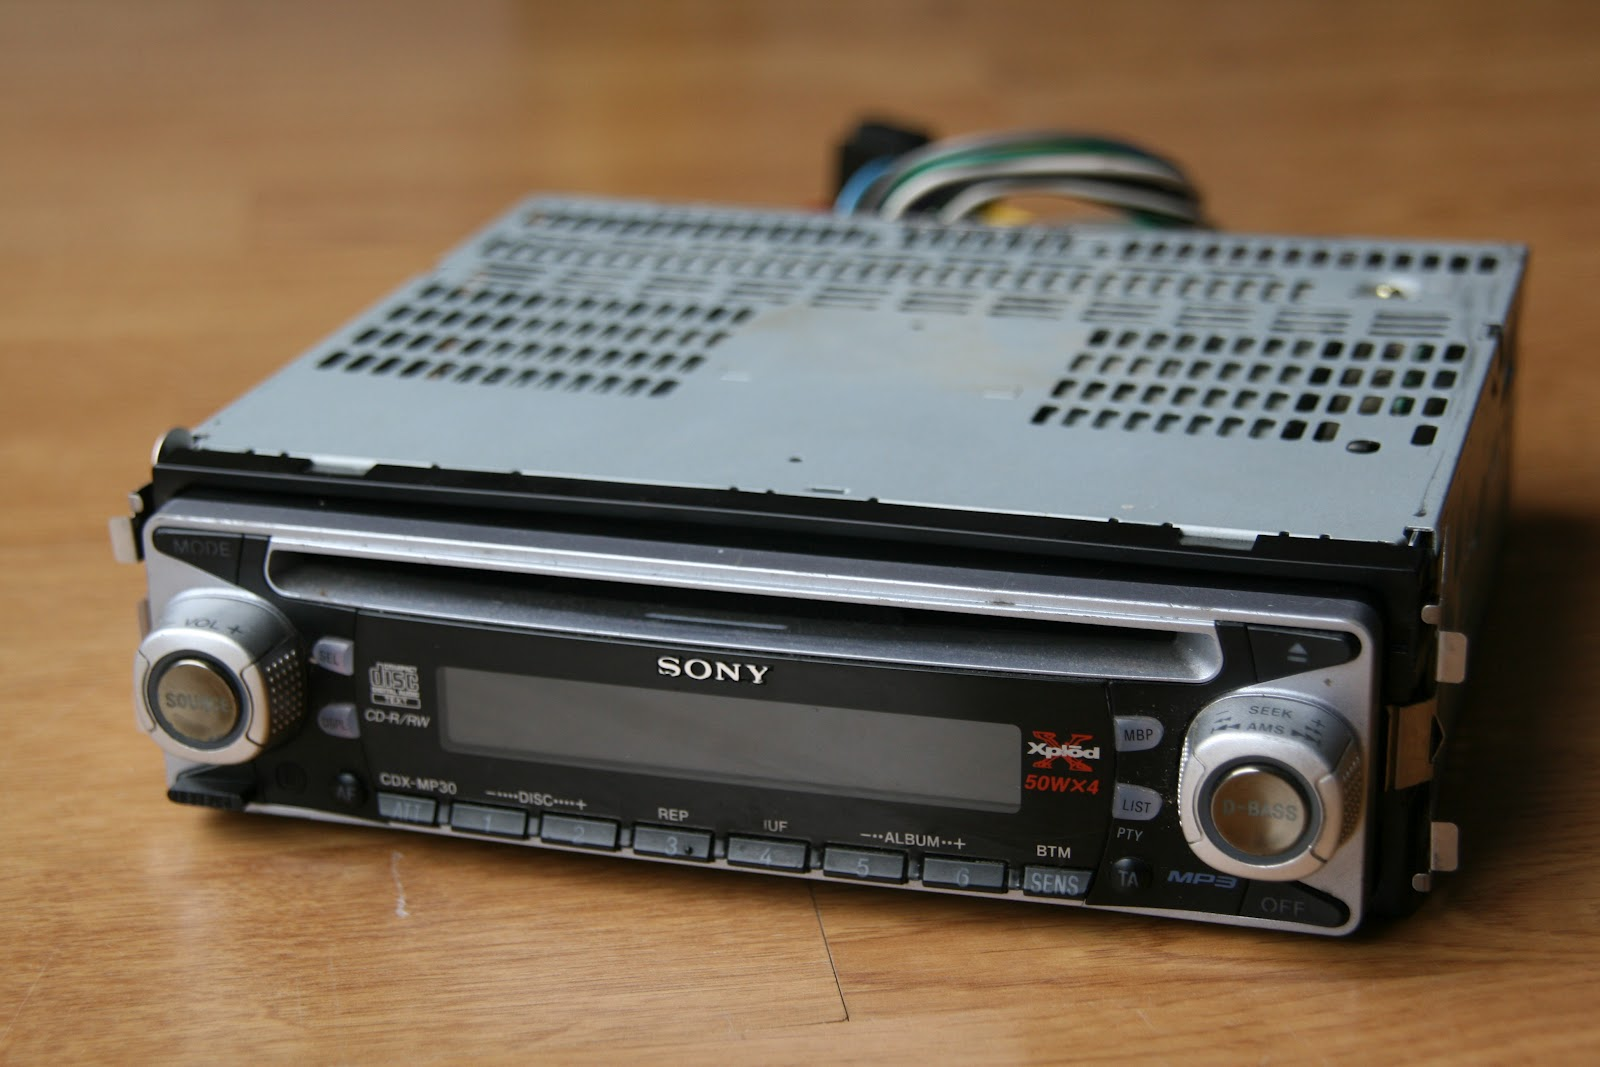 ... a Sony Car Stereo for my cheap car project. It's a 2002 model CDX-MP30.  I've downloaded the manual and it all seems pretty simple and  straightforward.